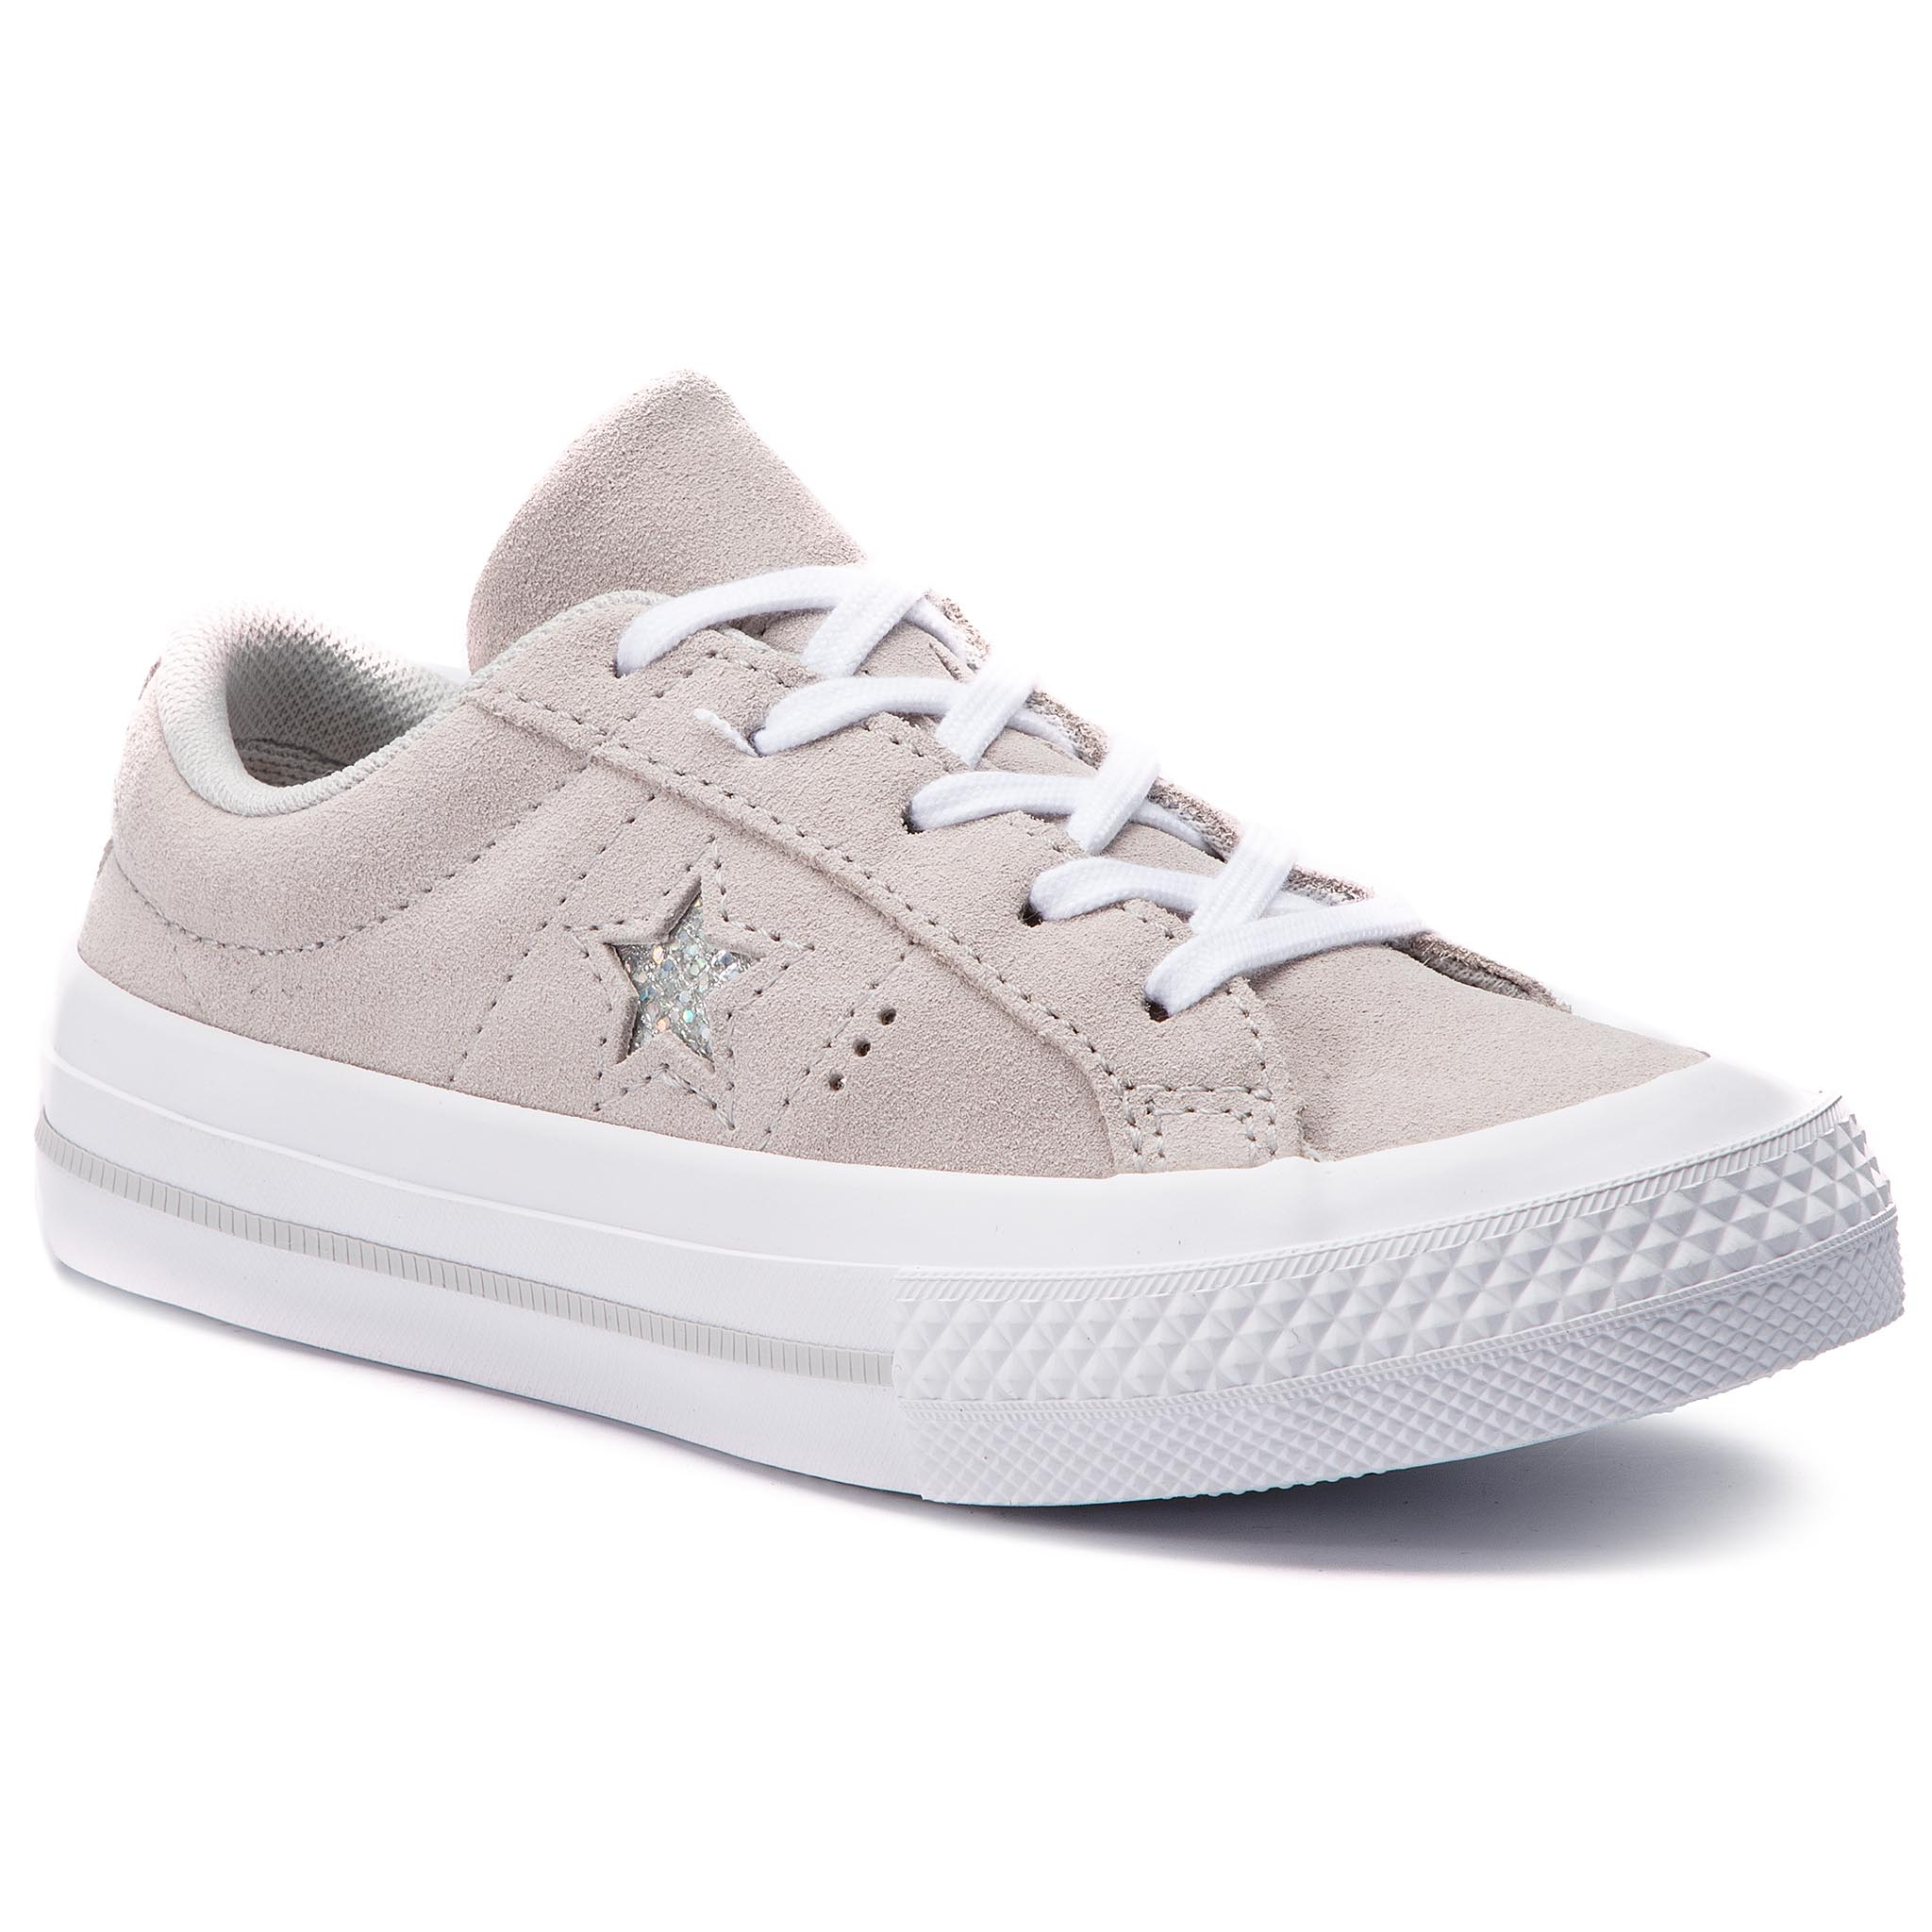 Teniși CONVERSE - One Star Ox 663589C Mouse/Mouse/White